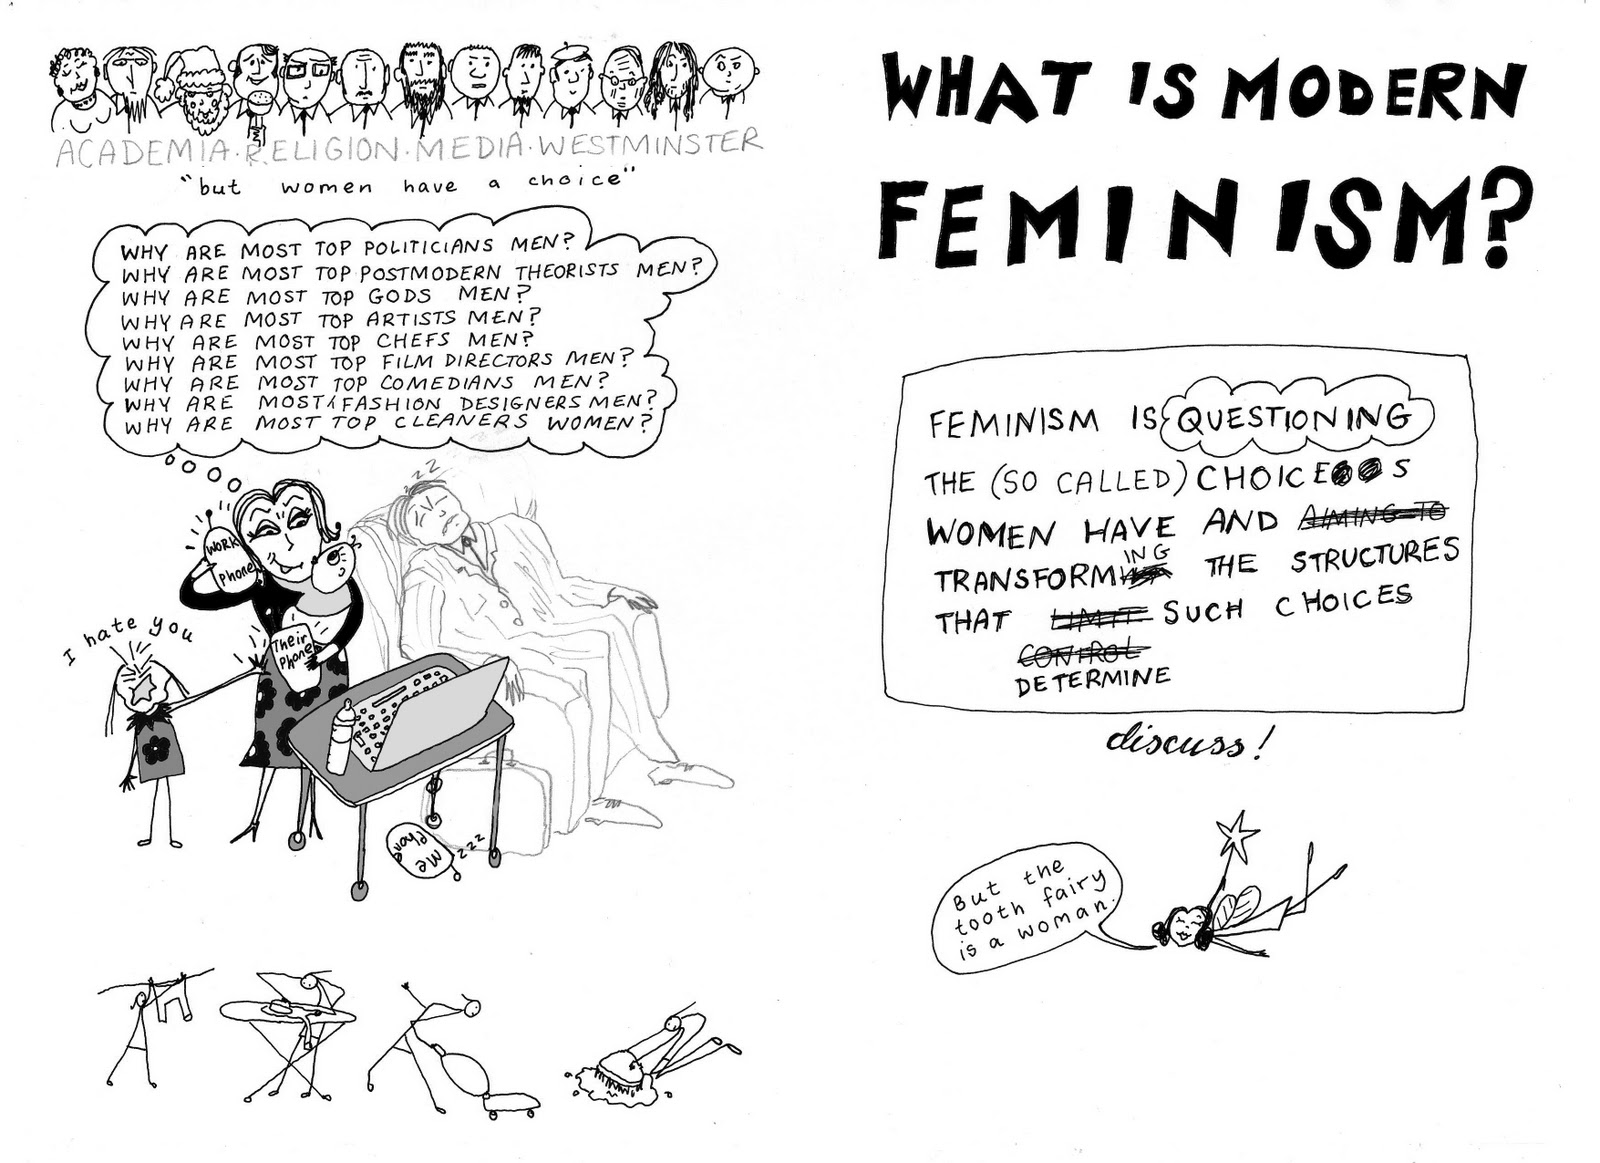 an understanding on the word feminism Feminism can be a confusing word to some people do feminists believe that women are superior to men are they anti-man these are common misconceptions about.